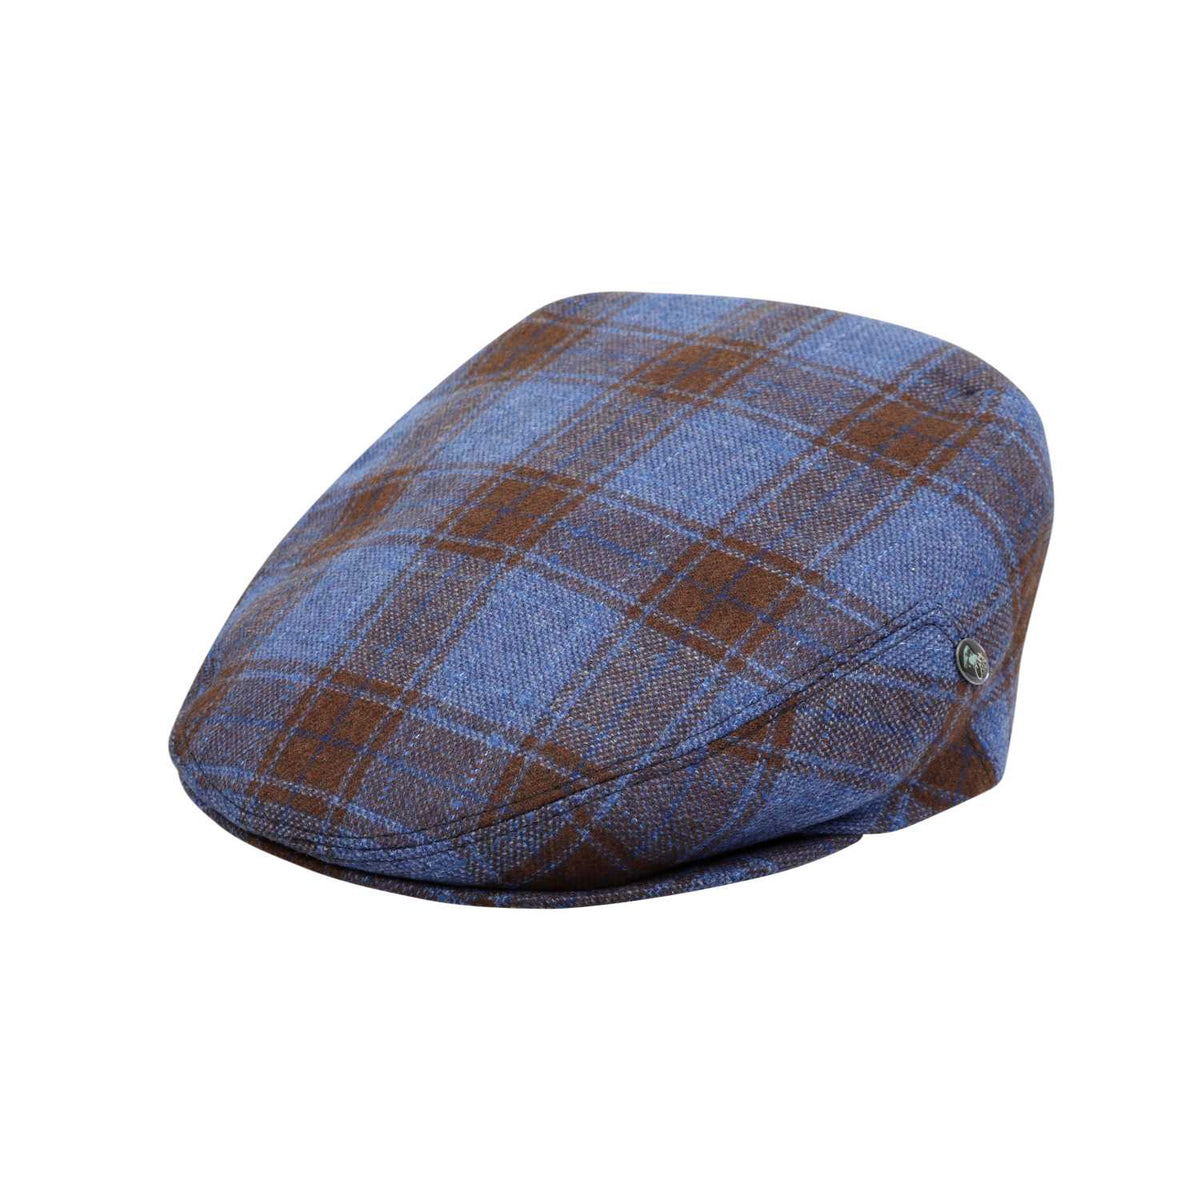 The Cashmere Choice - City Sport - Comfort Fit - Wool Cashmere Flat Cap - Blue Tartan Check 3483